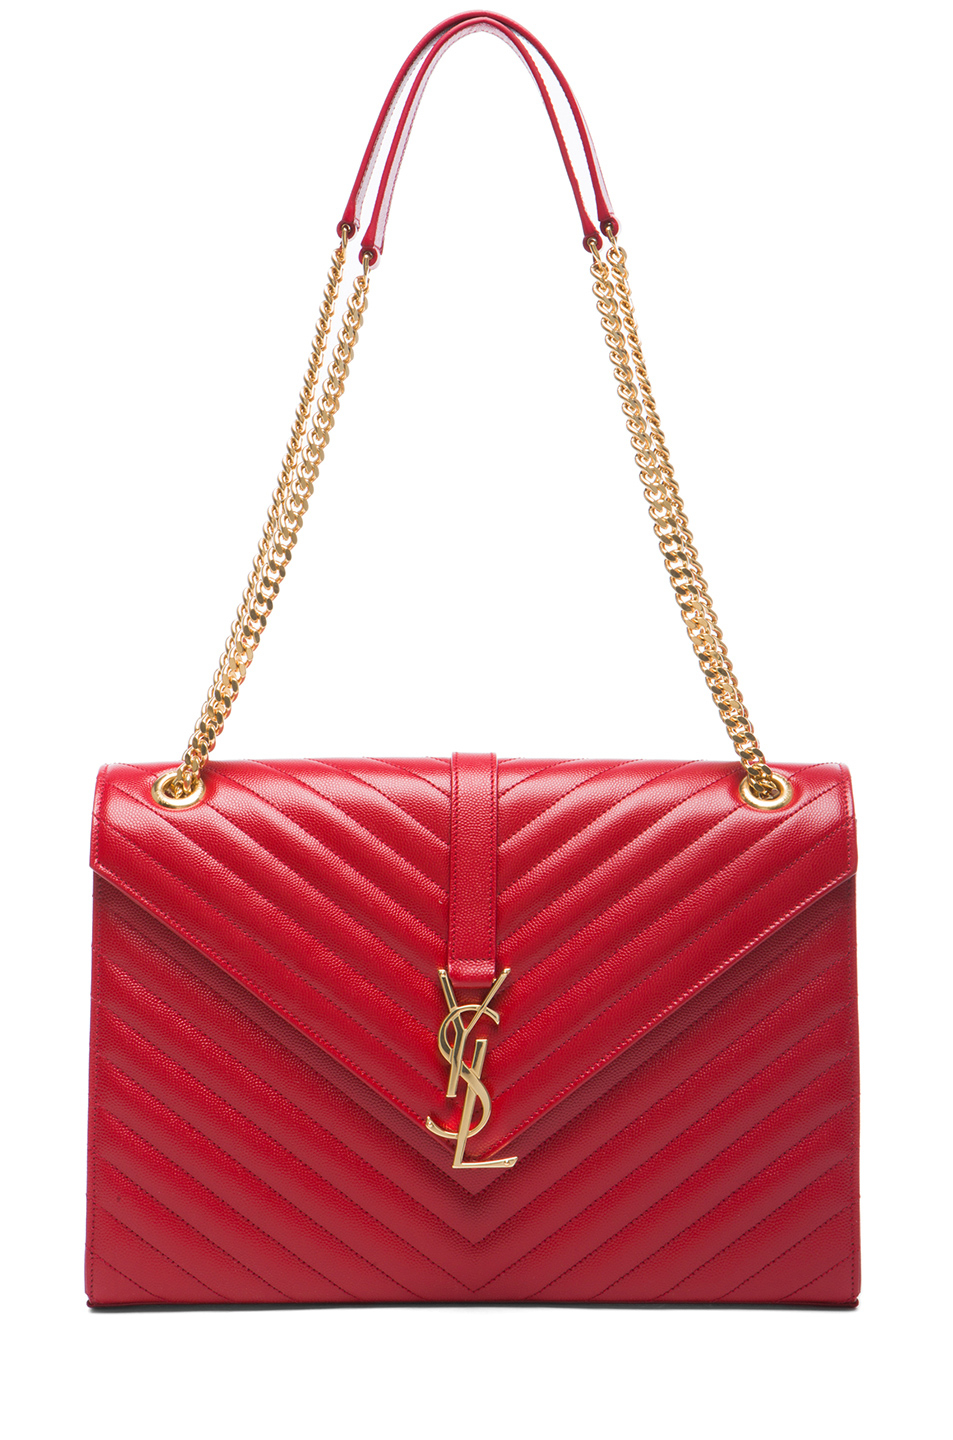 Authentic Yves Saint Laurent Red Smooth Calfskin Leather Lutetia Flap Clutch Bag at Yoogi's Closet. Condition is Like new Saint Laurent Paris is the rebranded version of the house of Yves Saint Laurent with creative director Hedi Slimane at the helm.